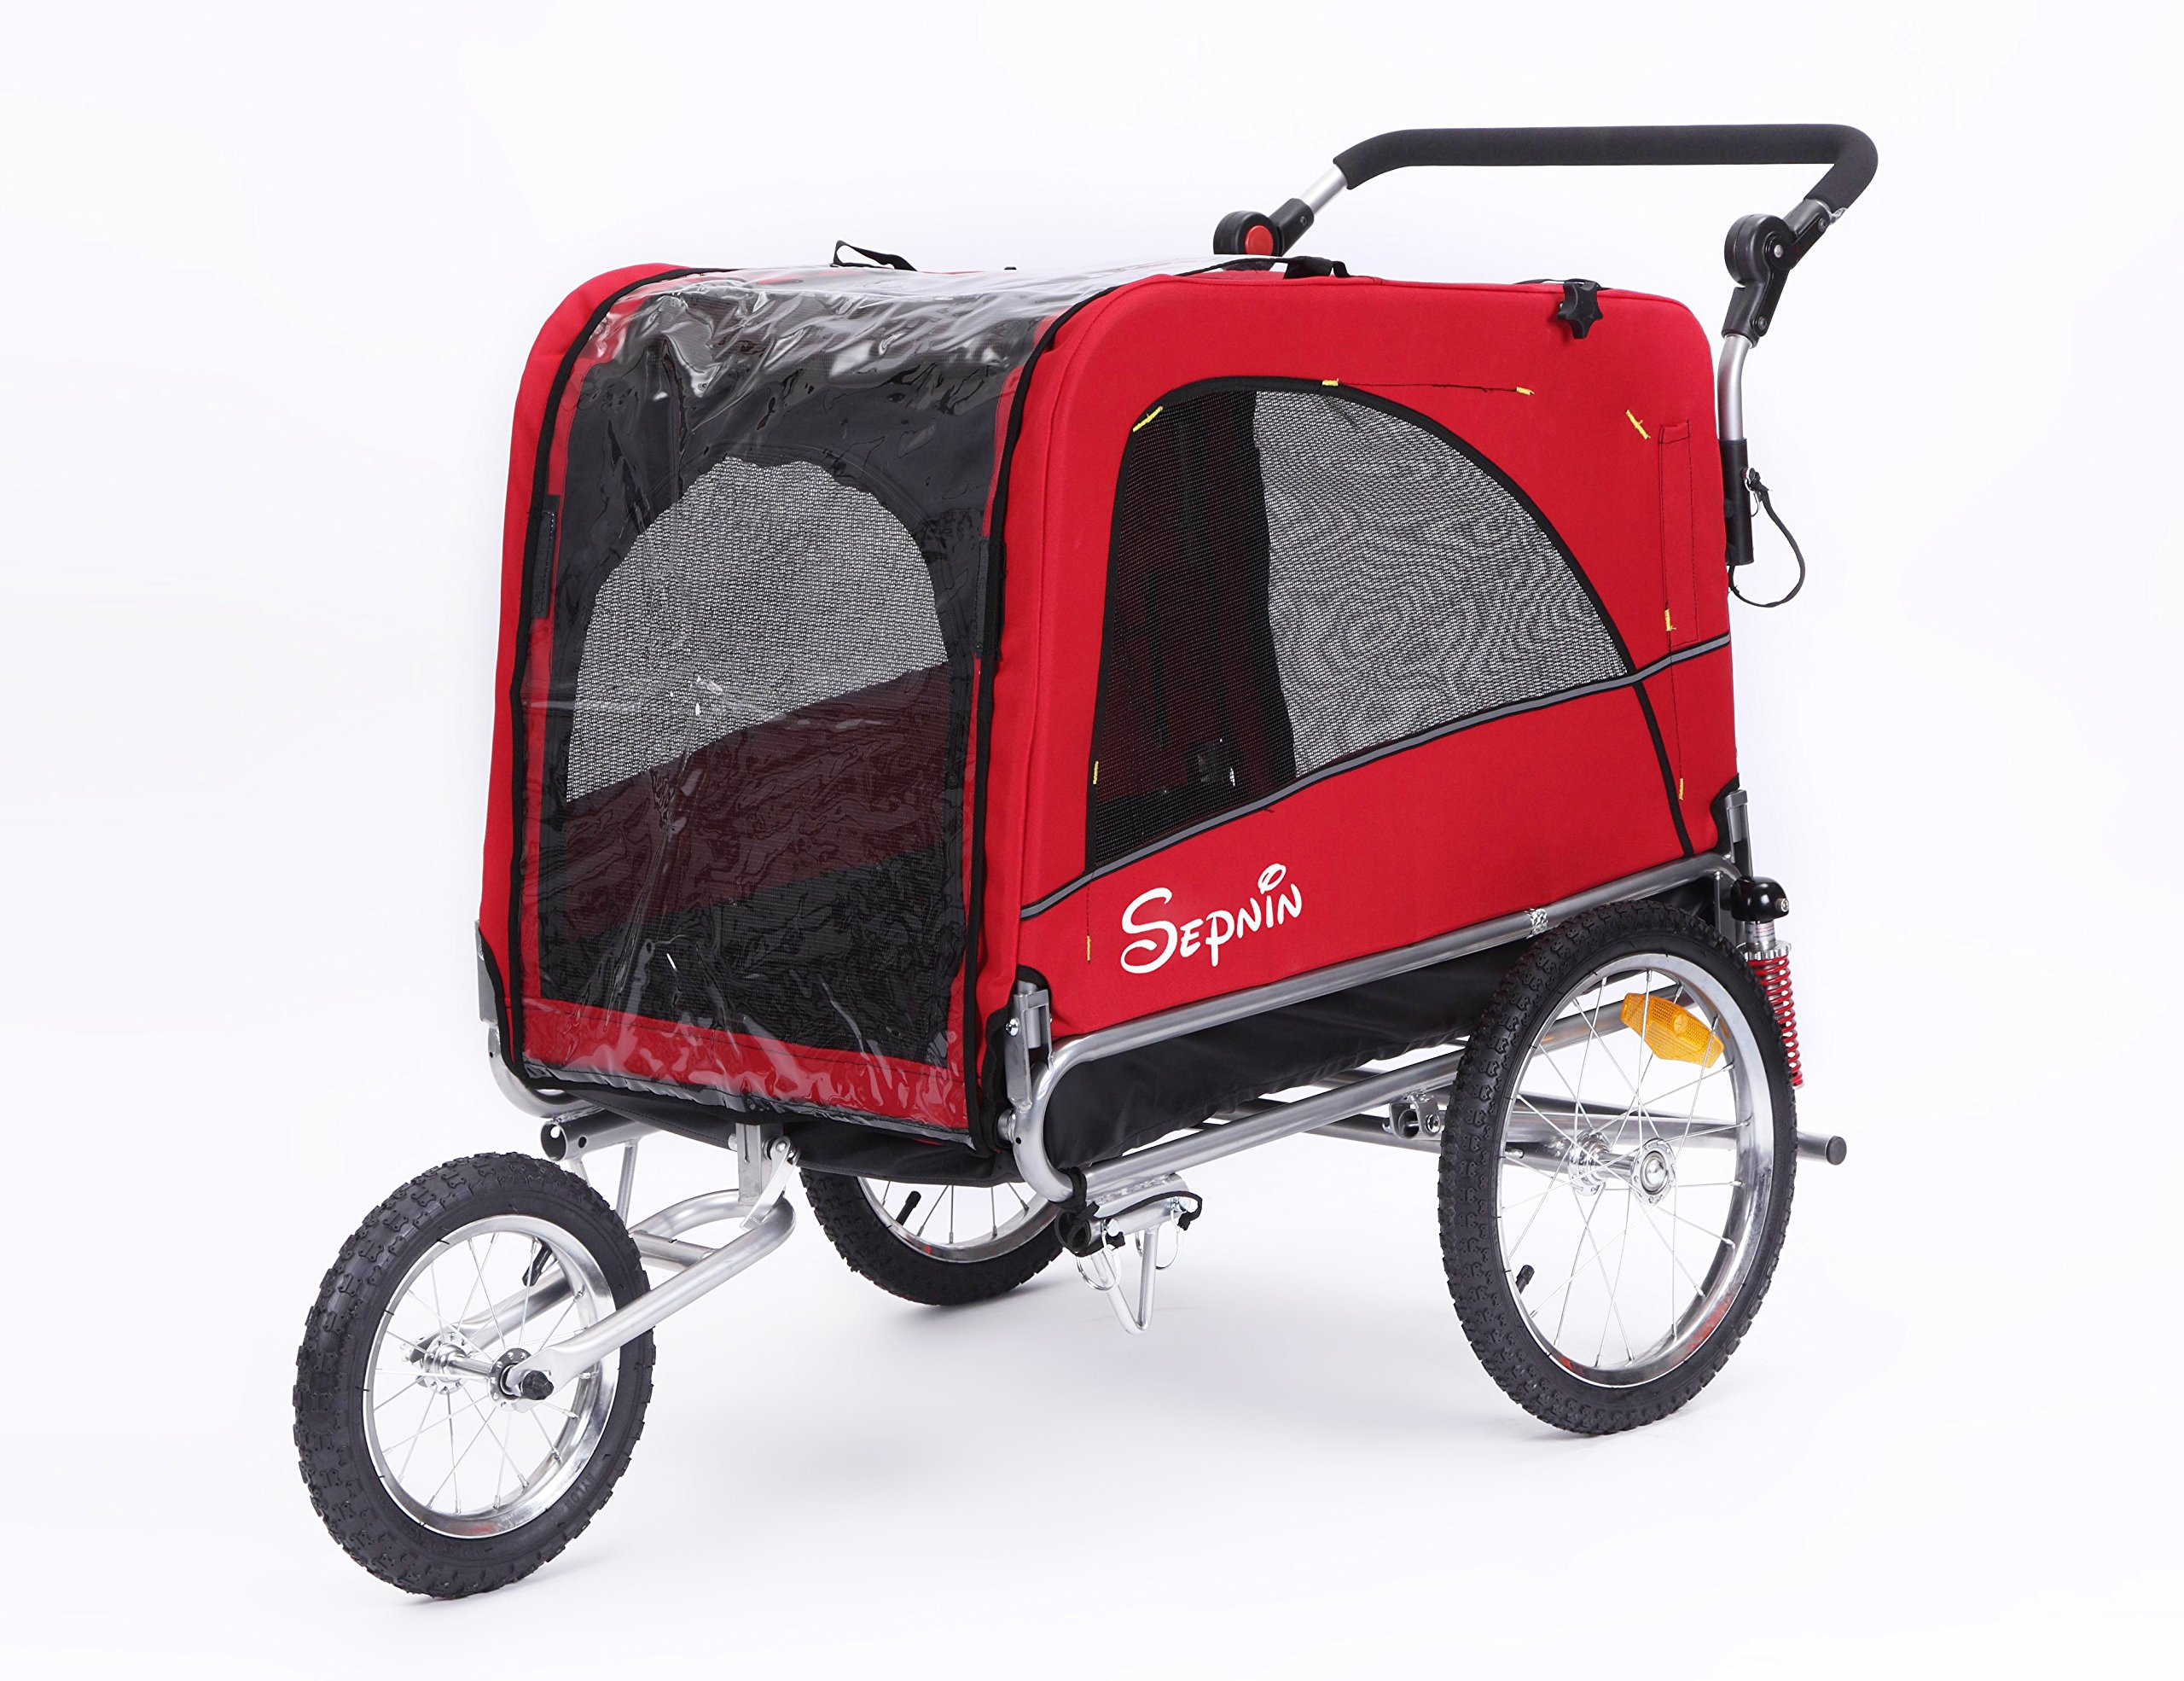 Sepnine & Leonpets 3 in 1 Luxury Large Sized Bike Trailer Bicycle Pet Trailer/Jogger/Dog Cage with Suspension 10308 (Red/Black)